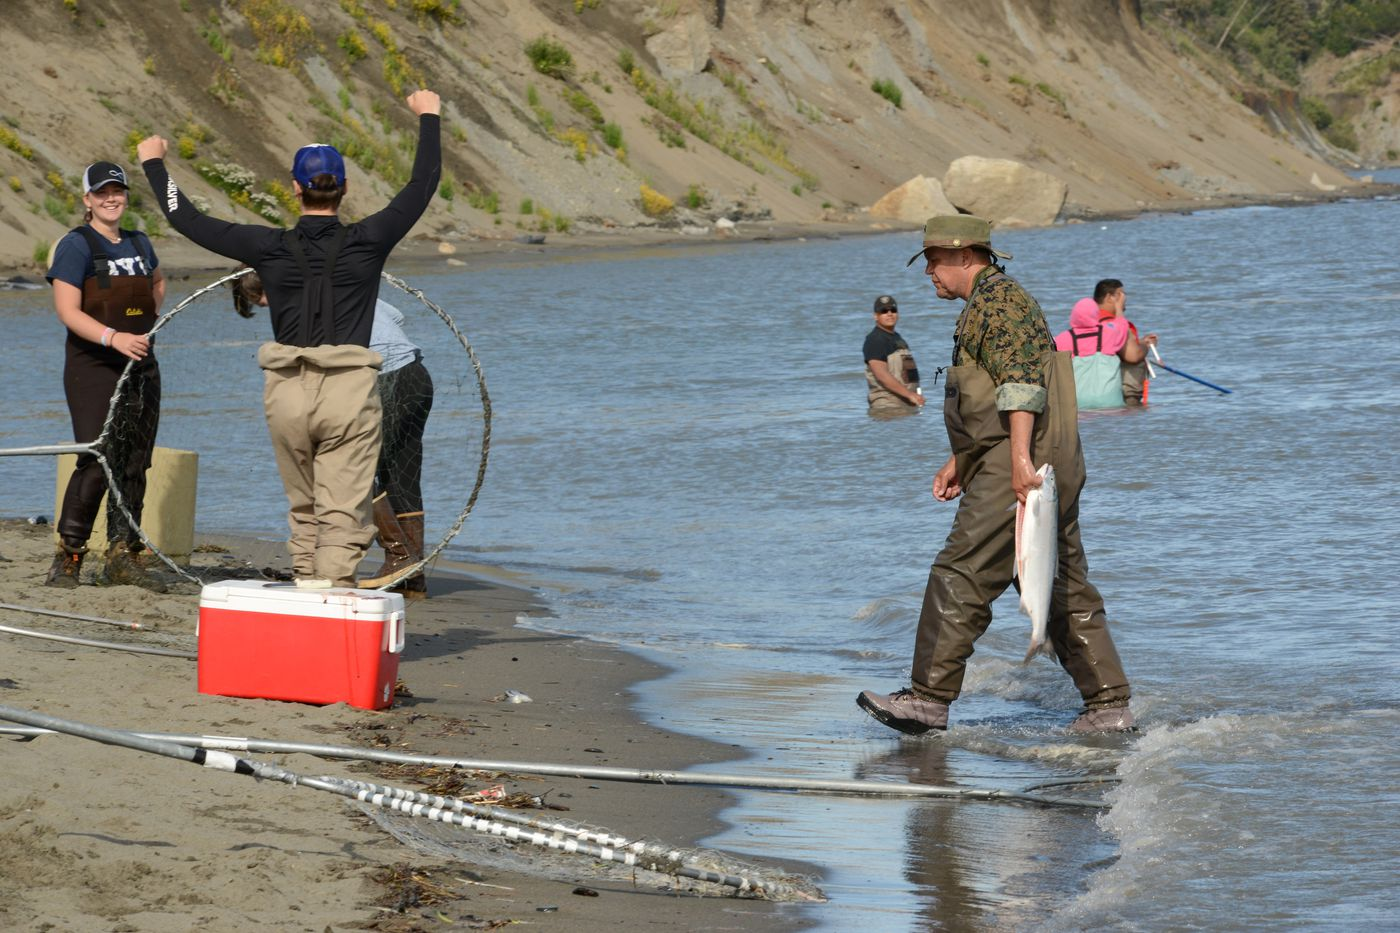 A fisherman brings a cleaned salmon to his cooler on the bank of the north Kenai River July 21, 2020. (Anne Raup / ADN)